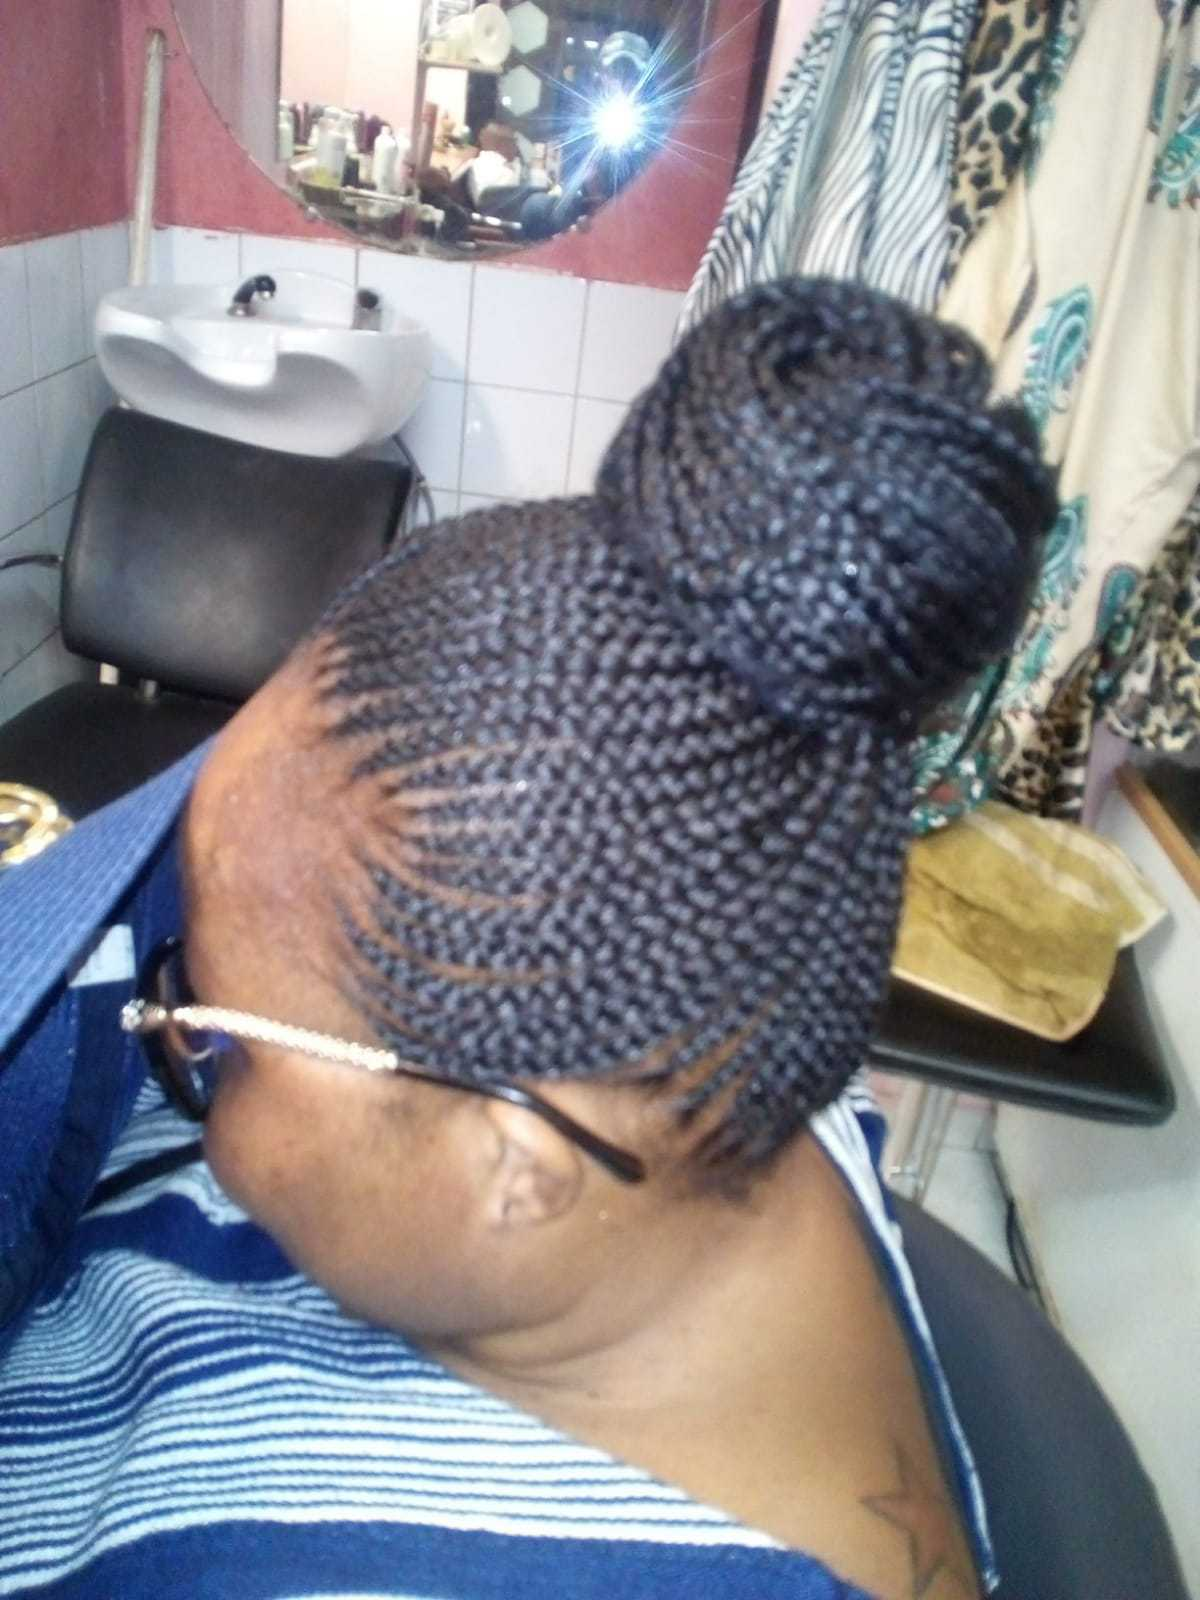 salon de coiffure afro tresse tresses box braids crochet braids vanilles tissages paris 75 77 78 91 92 93 94 95 VYMUYGVQ